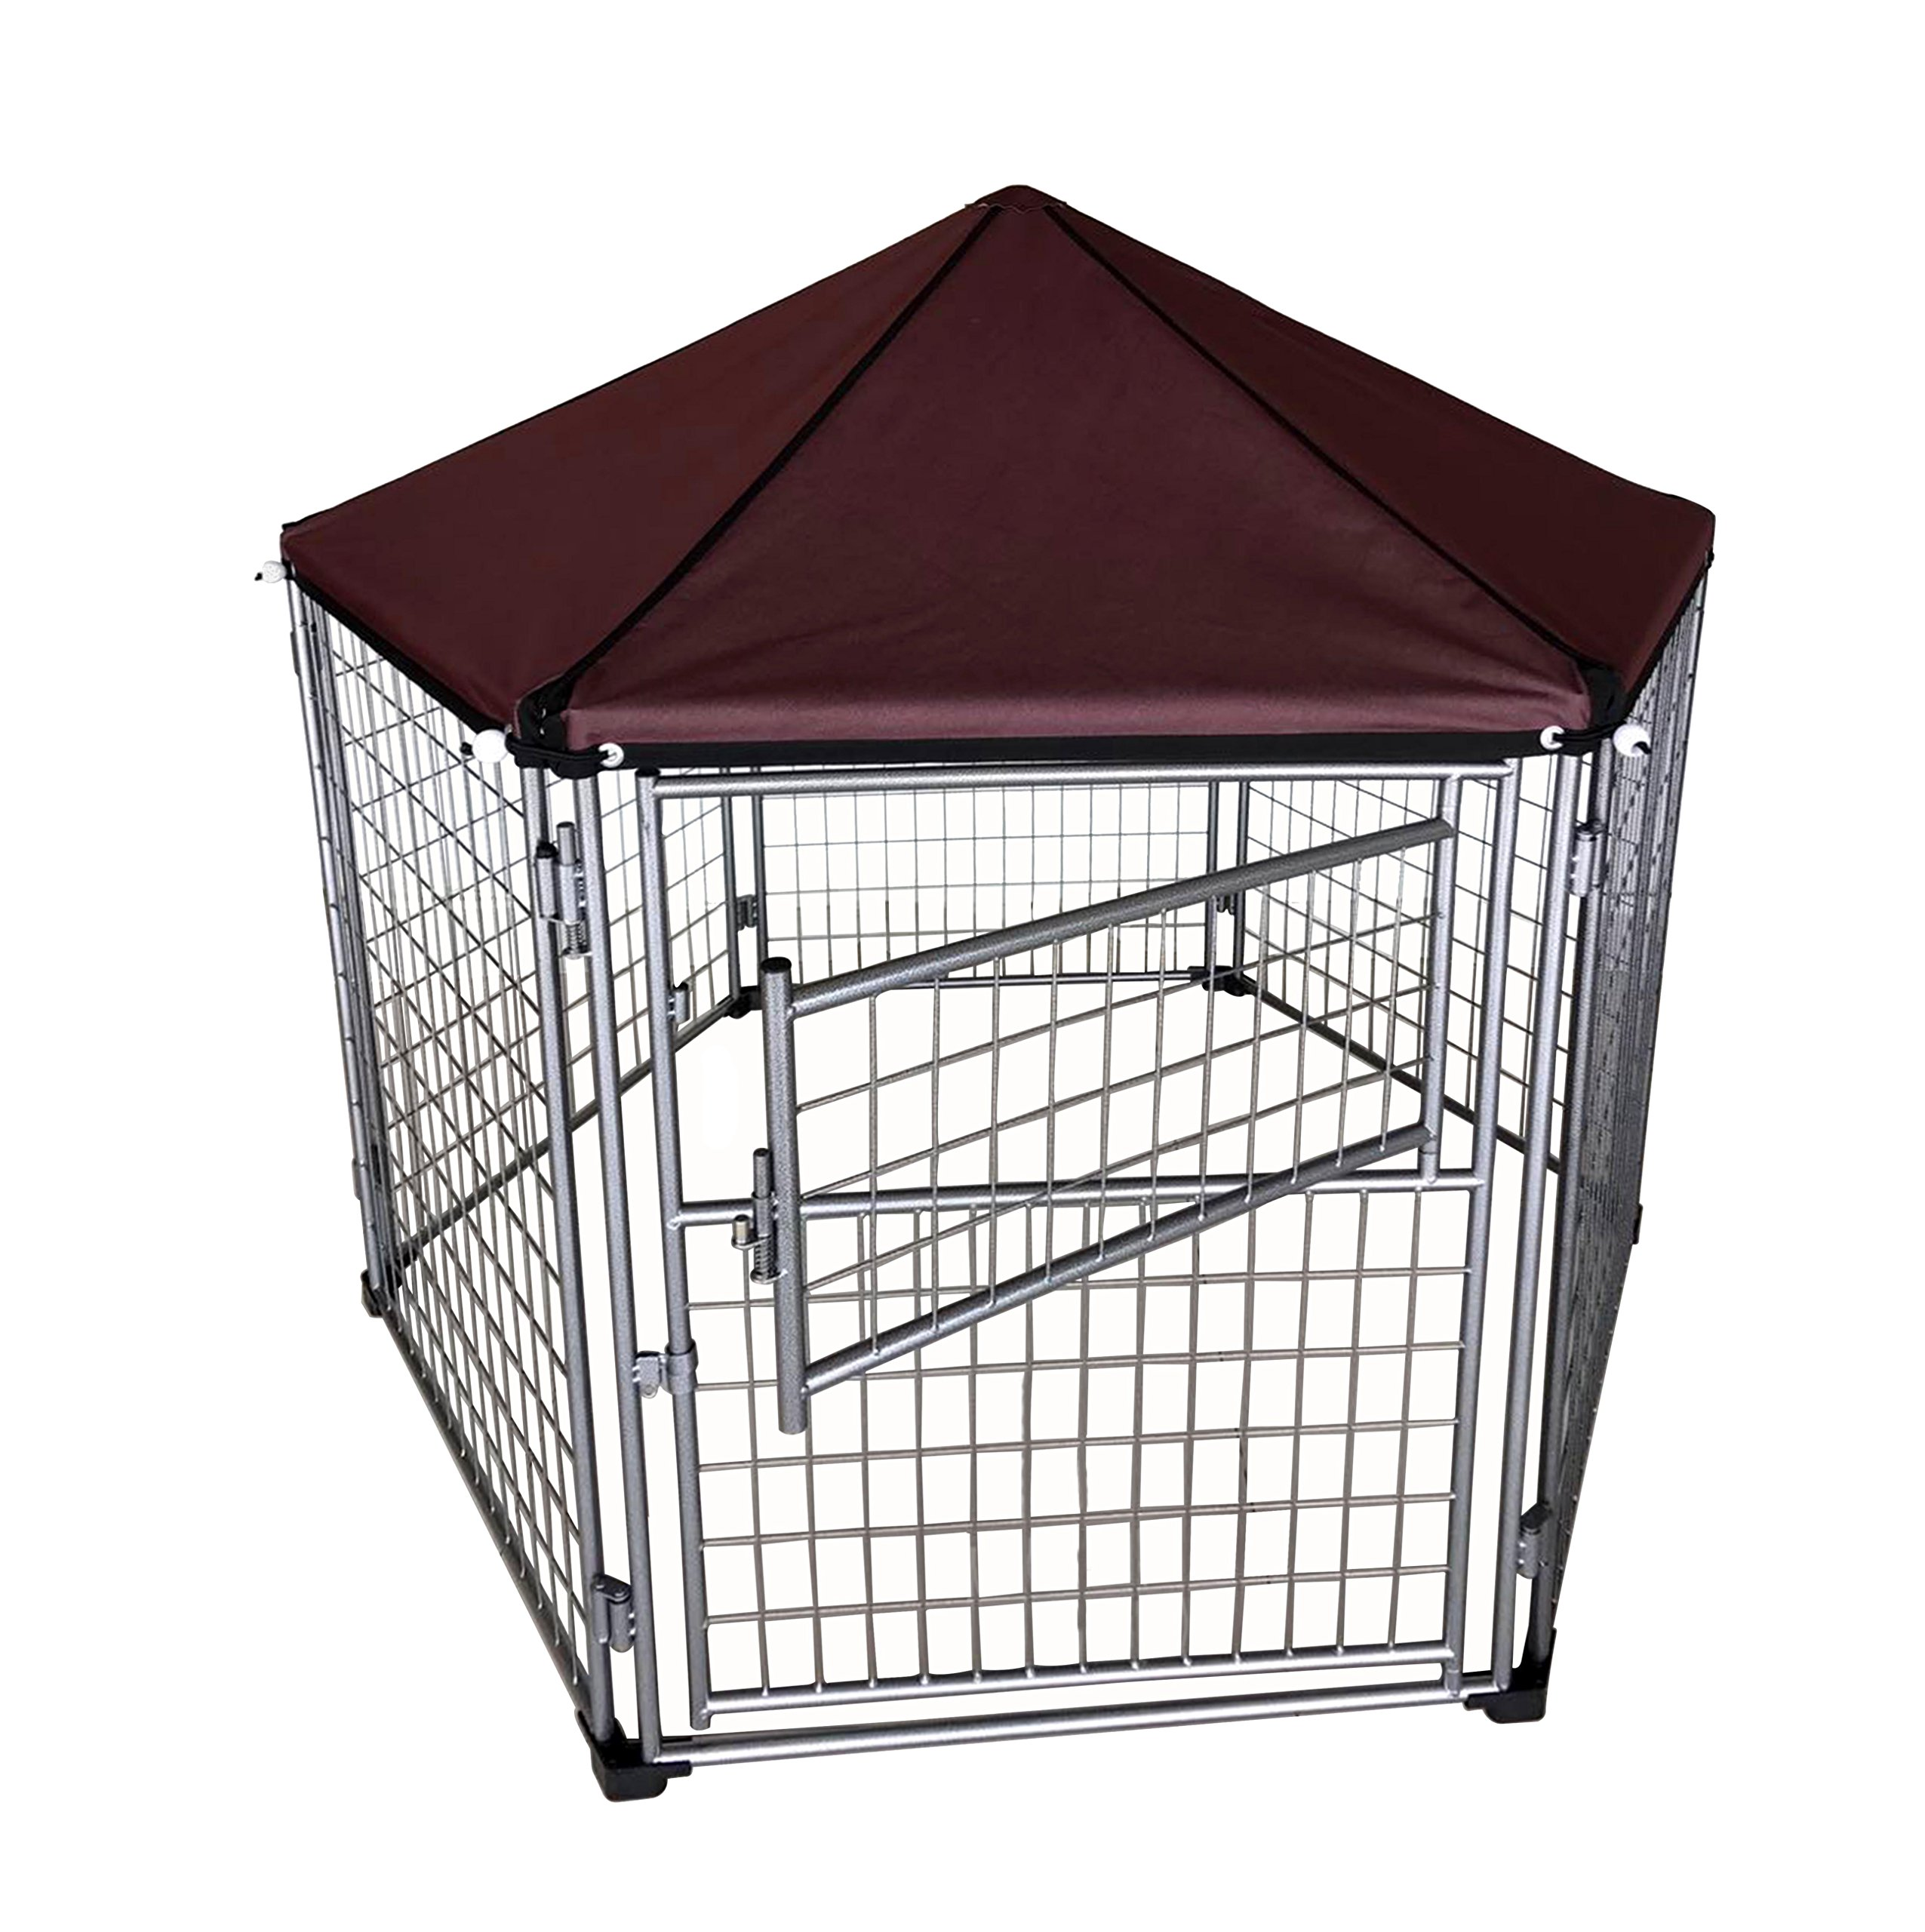 Neocraft My Pet Companion Outdoor Dog Kennel with Included Roof Weather Resistant Cover (5.5'), Waterproof Winter Welded Wire Pet House Shelter - Ideal for Any Dog Breed, Easy Assembly by Neocraft